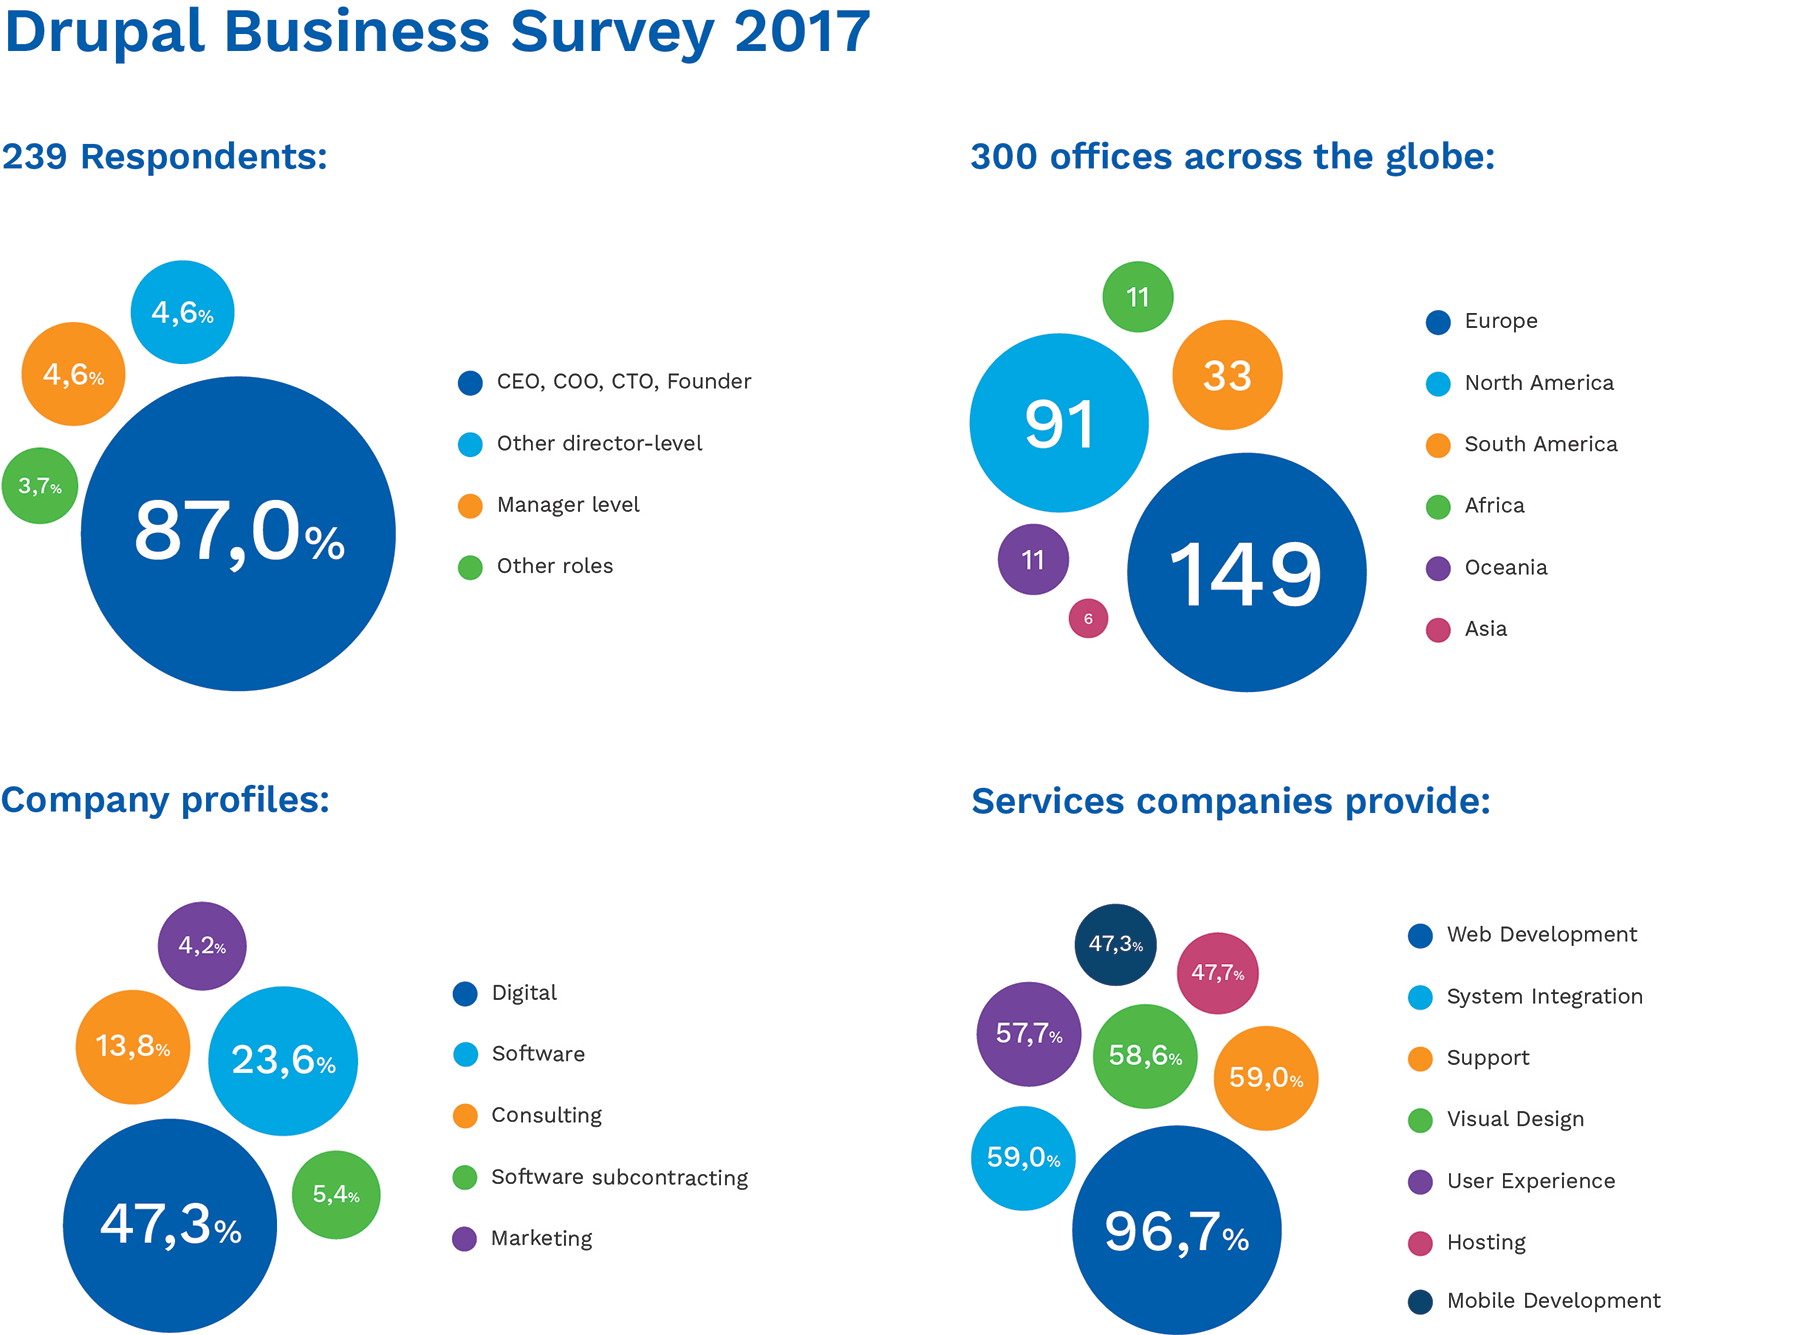 Drupal Business Survey 2017